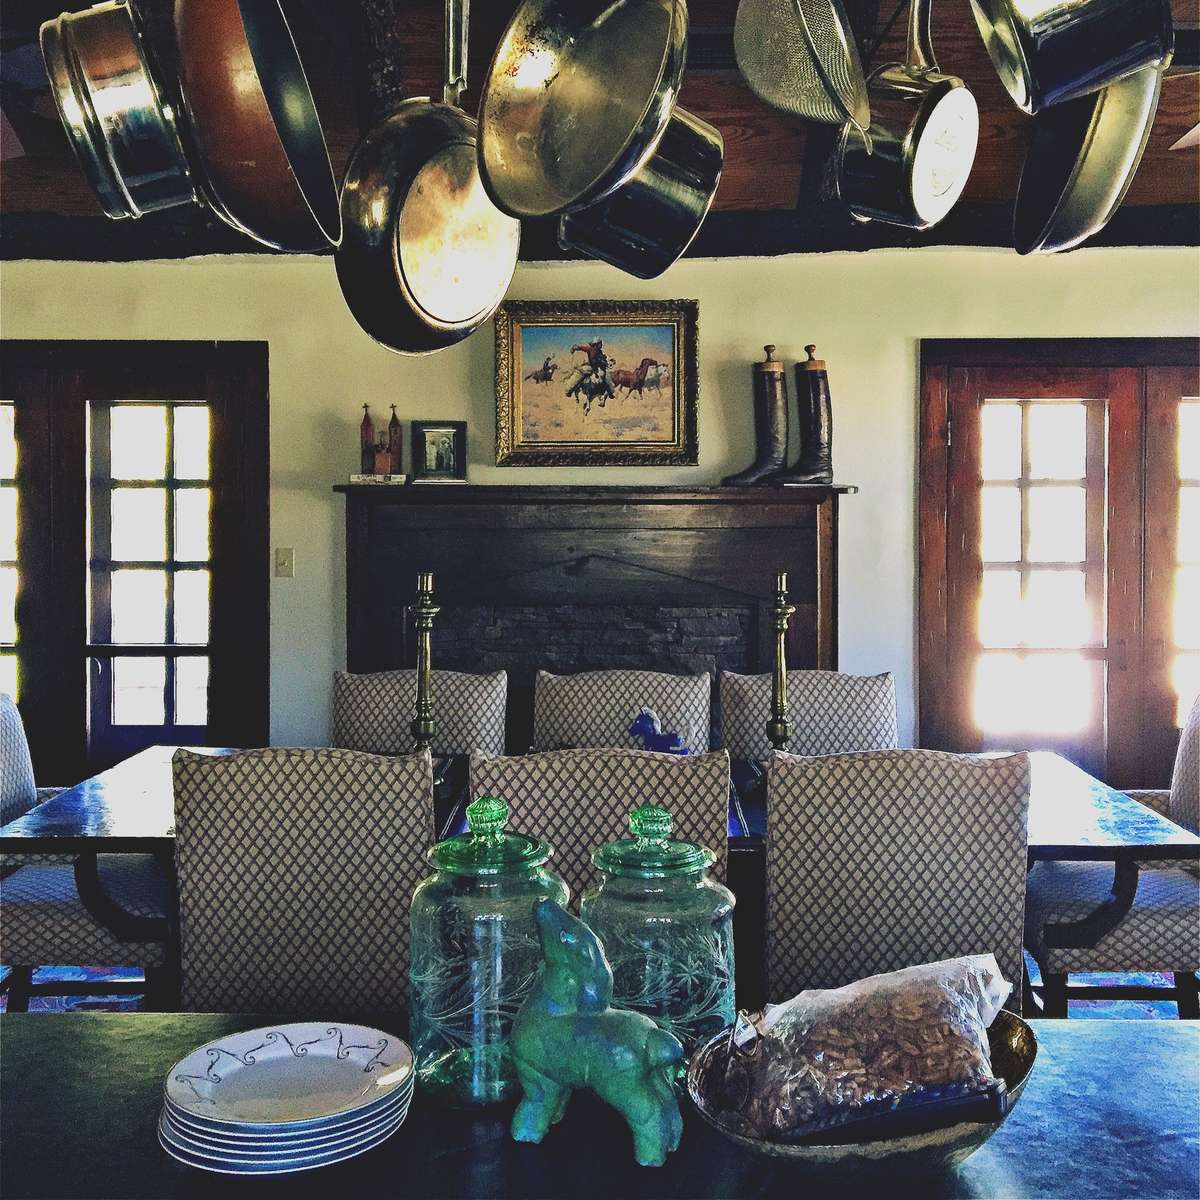 It was an incredible opportunity to re-organize a ranch home already filled with wonderful heritage.